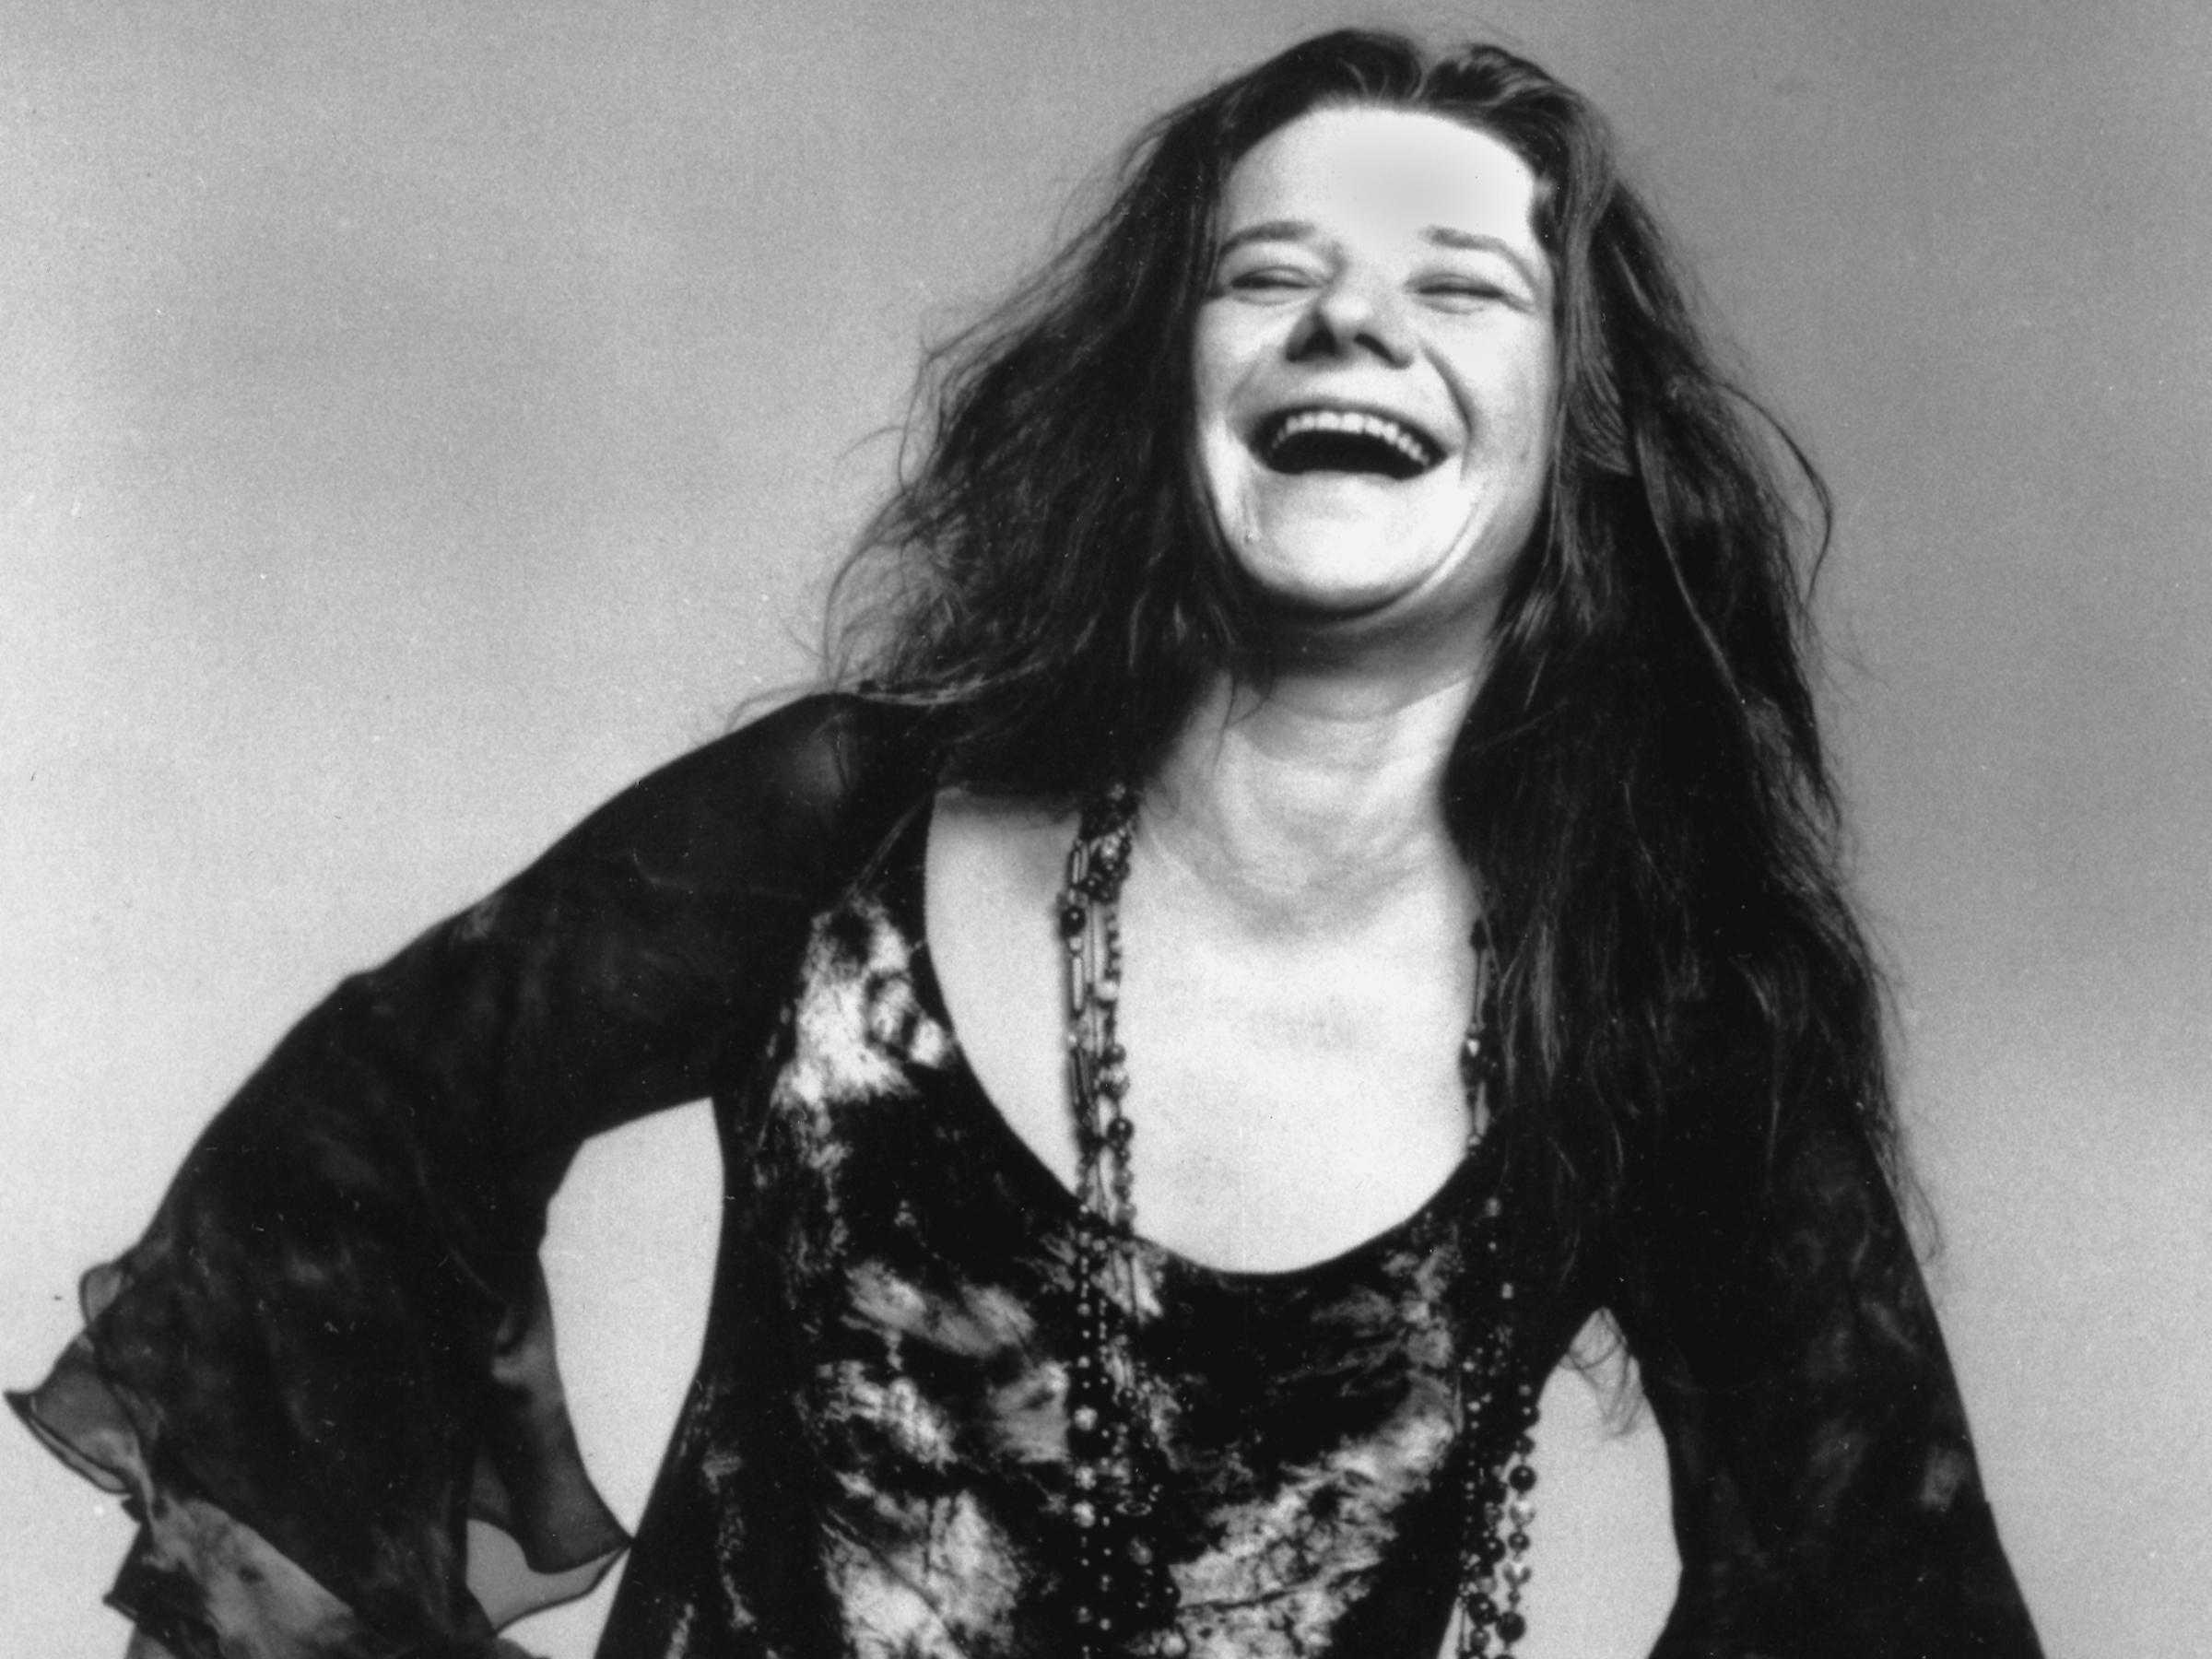 Since rock legend Janis Joplin died at 27, producers have spent millions to make a biopic about her — and it's finally happening